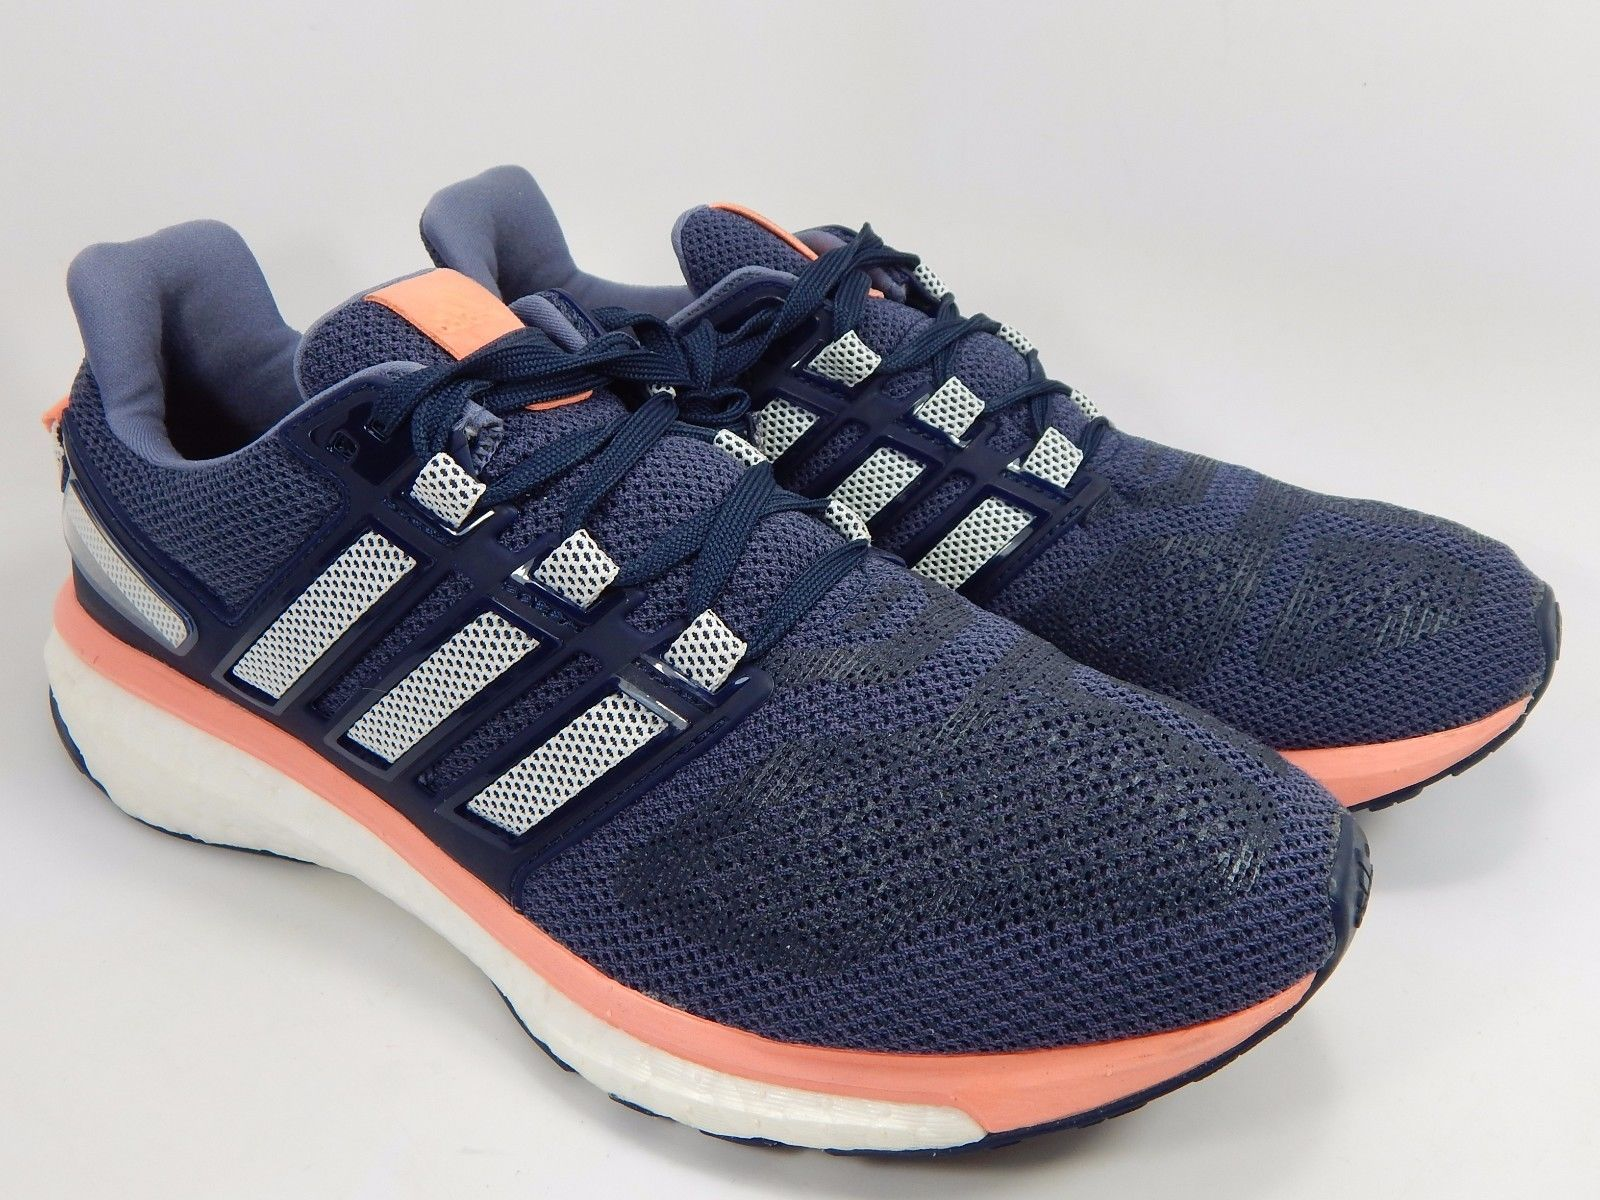 Adidas Energy Boost 3 Women's Shoes Size US 9.5 M (B) EU 42 Pink Purple AF4936